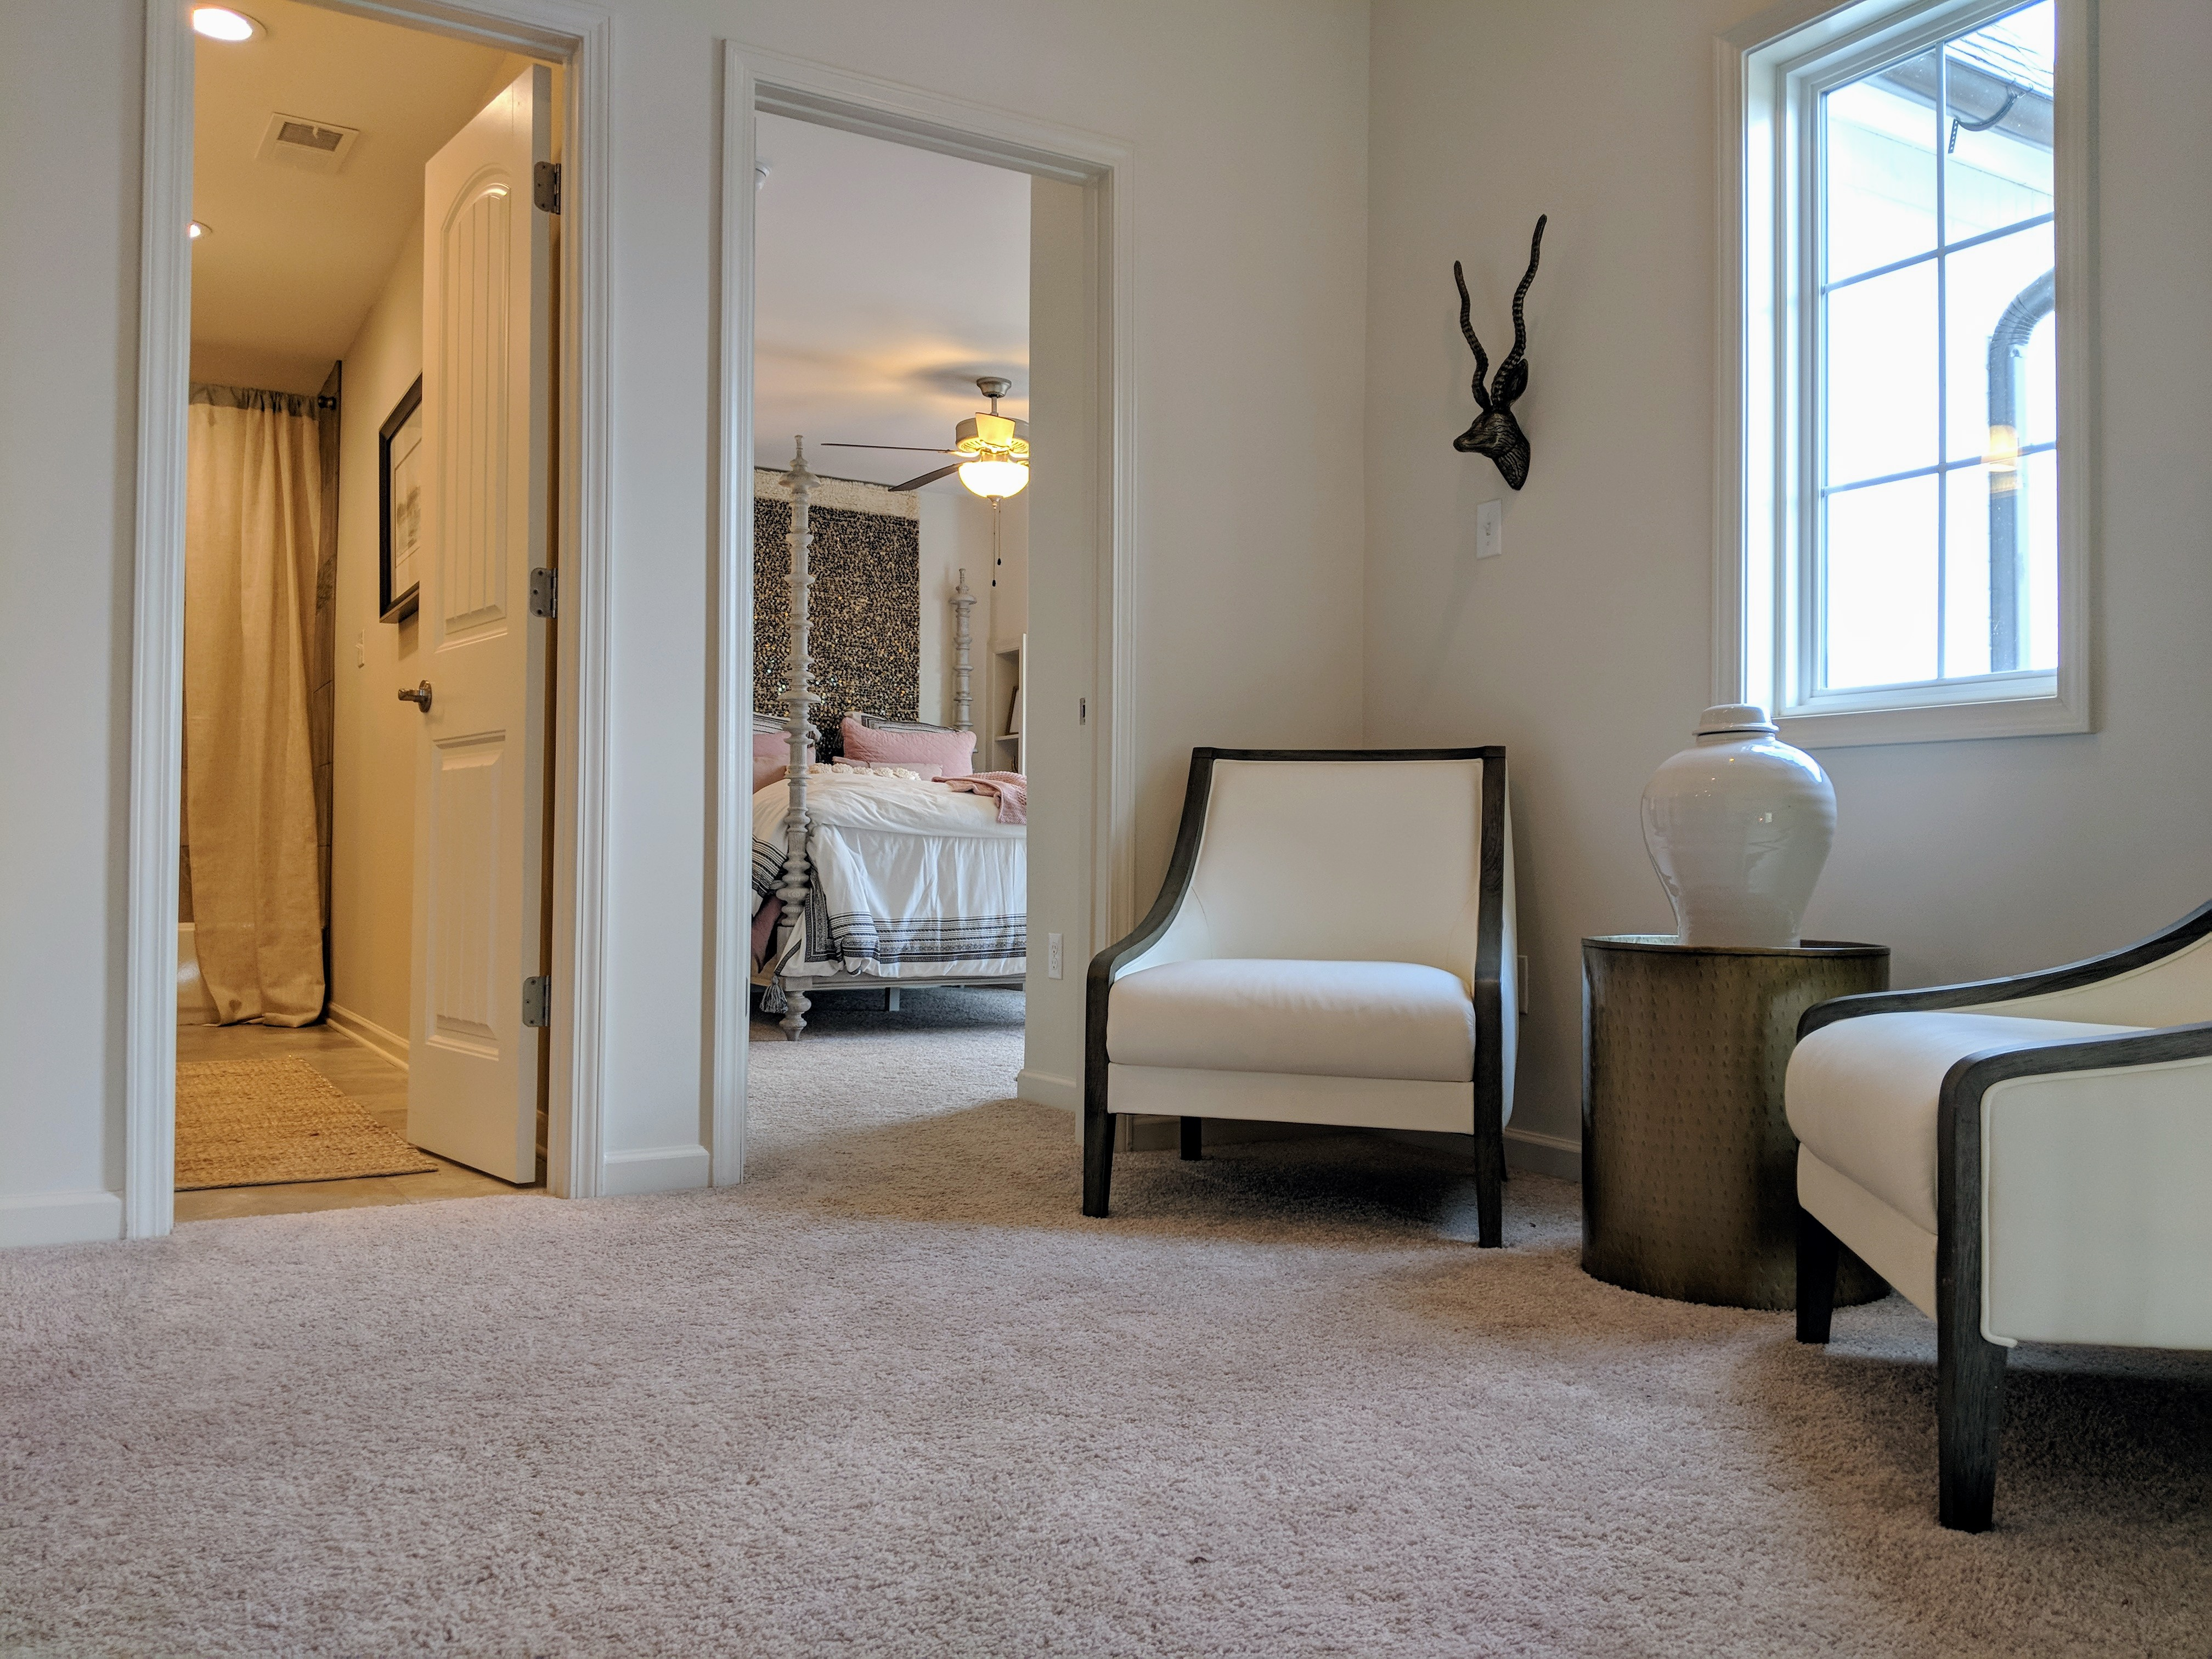 Homes for sales in Memphis area. Upstairs loft joining bedroom and guest suite. Unfortunately the bathroom is shared with the guest suite.